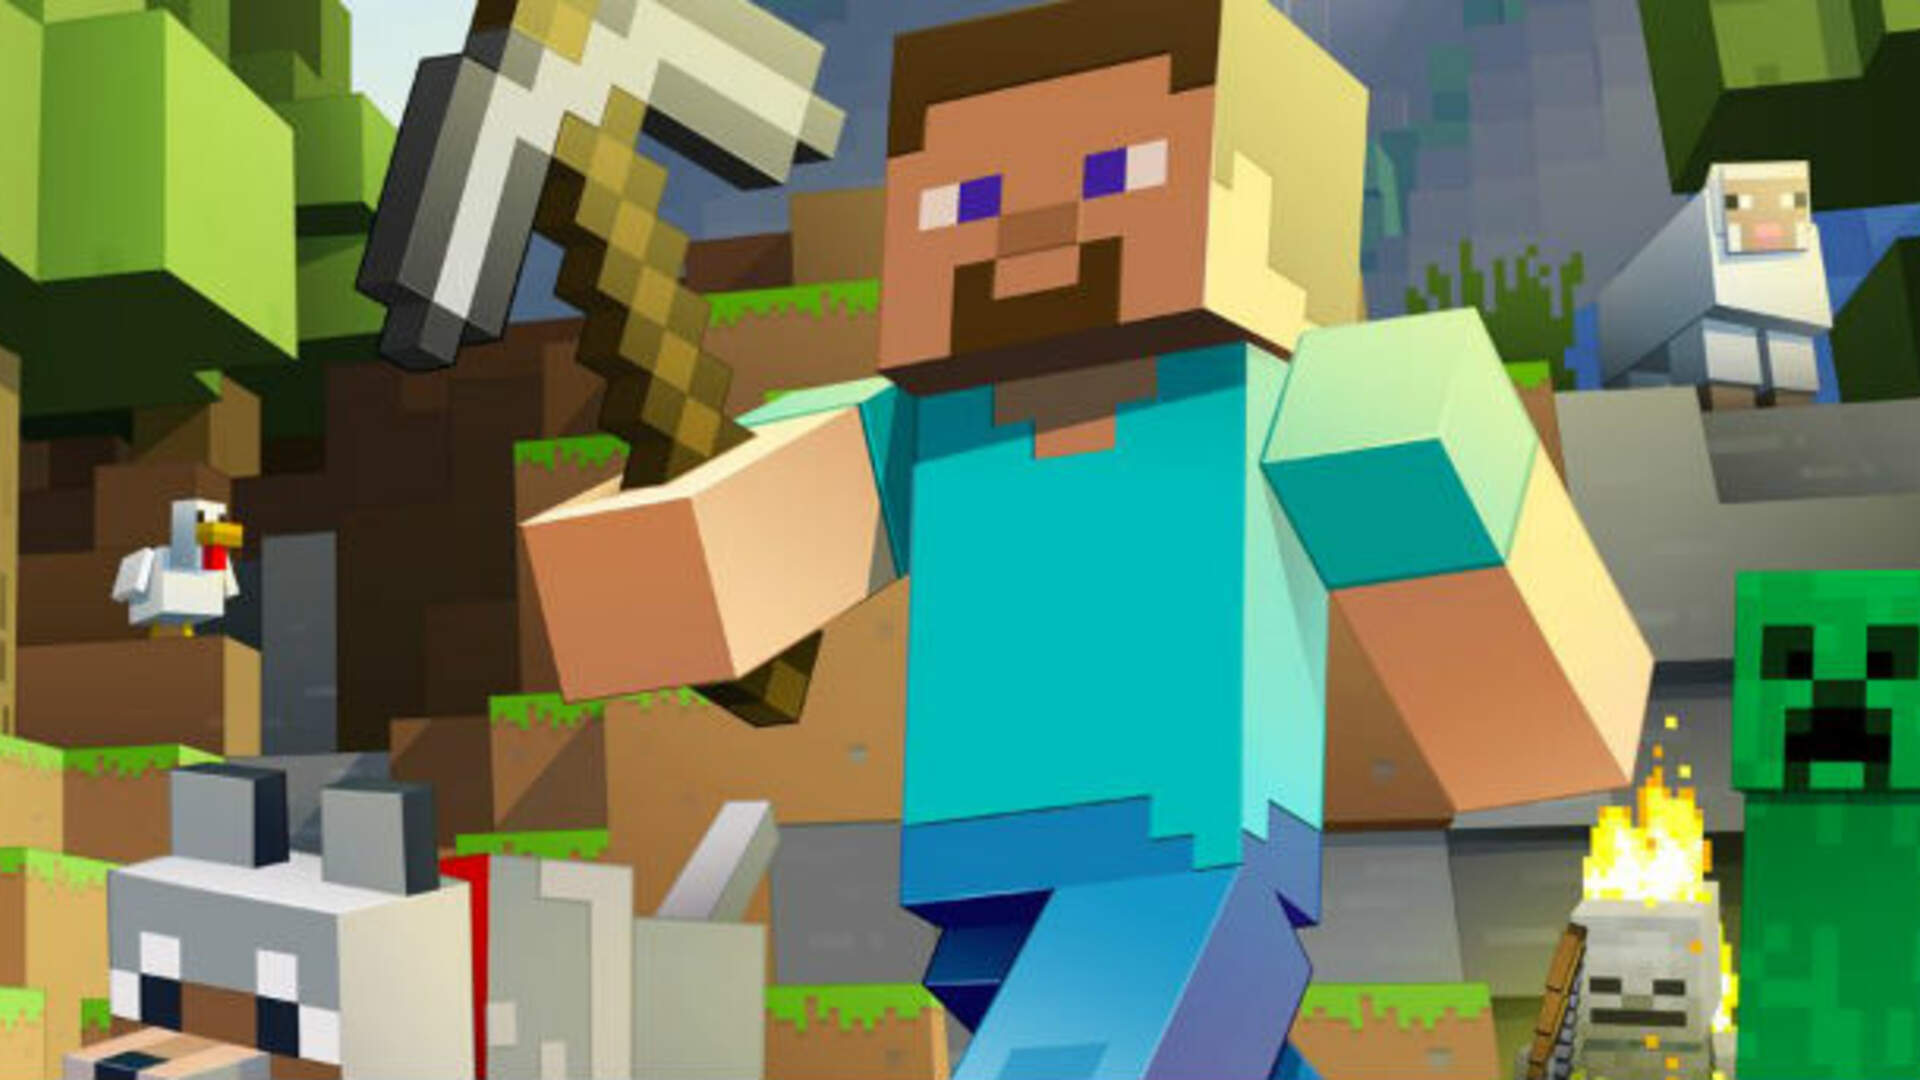 Over 25 Million Copies of Minecraft Have Been Sold on PC